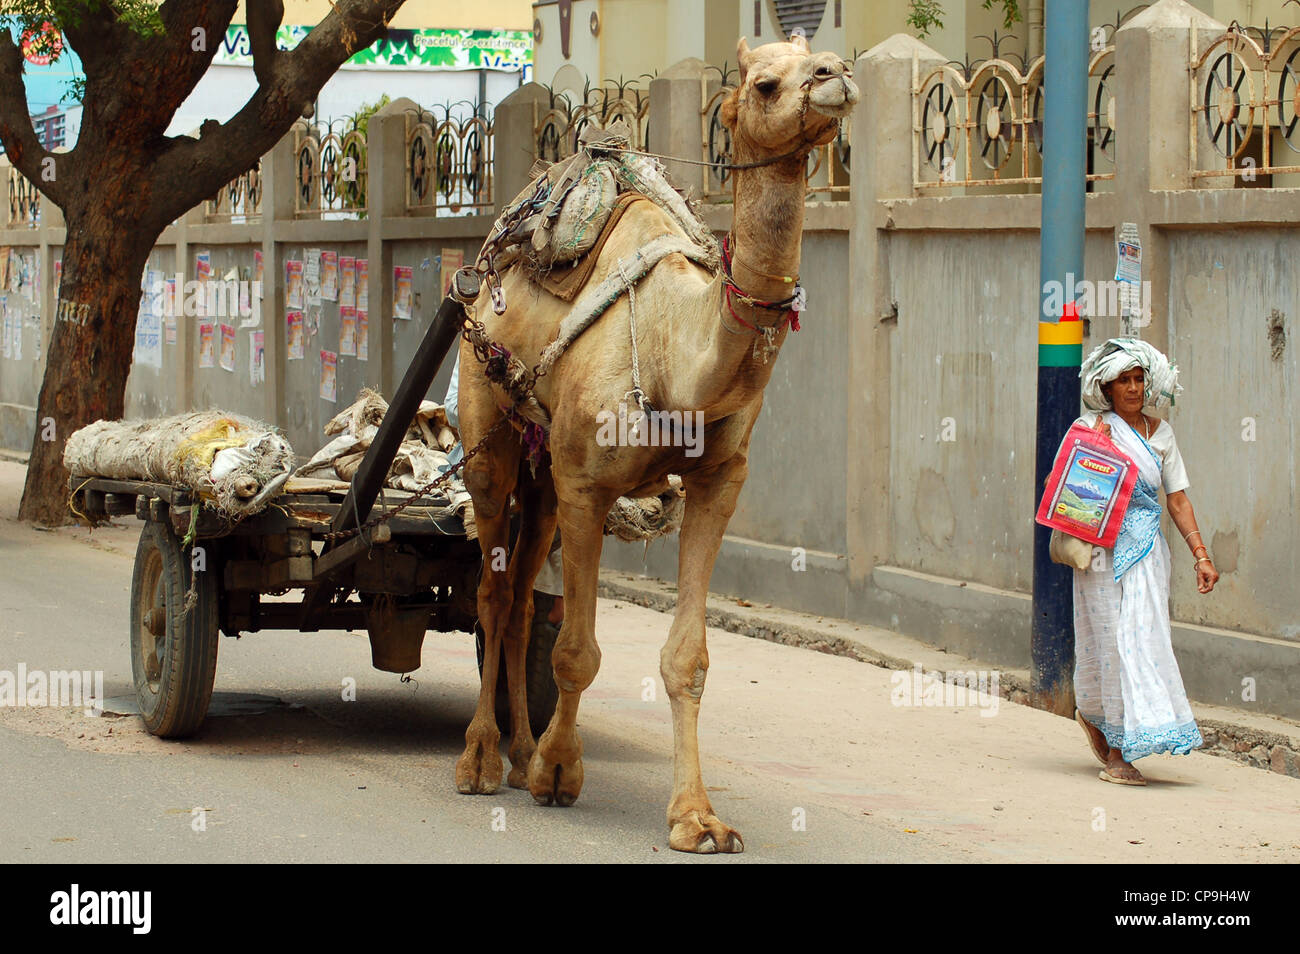 A cart drawn by a camel - Stock Image